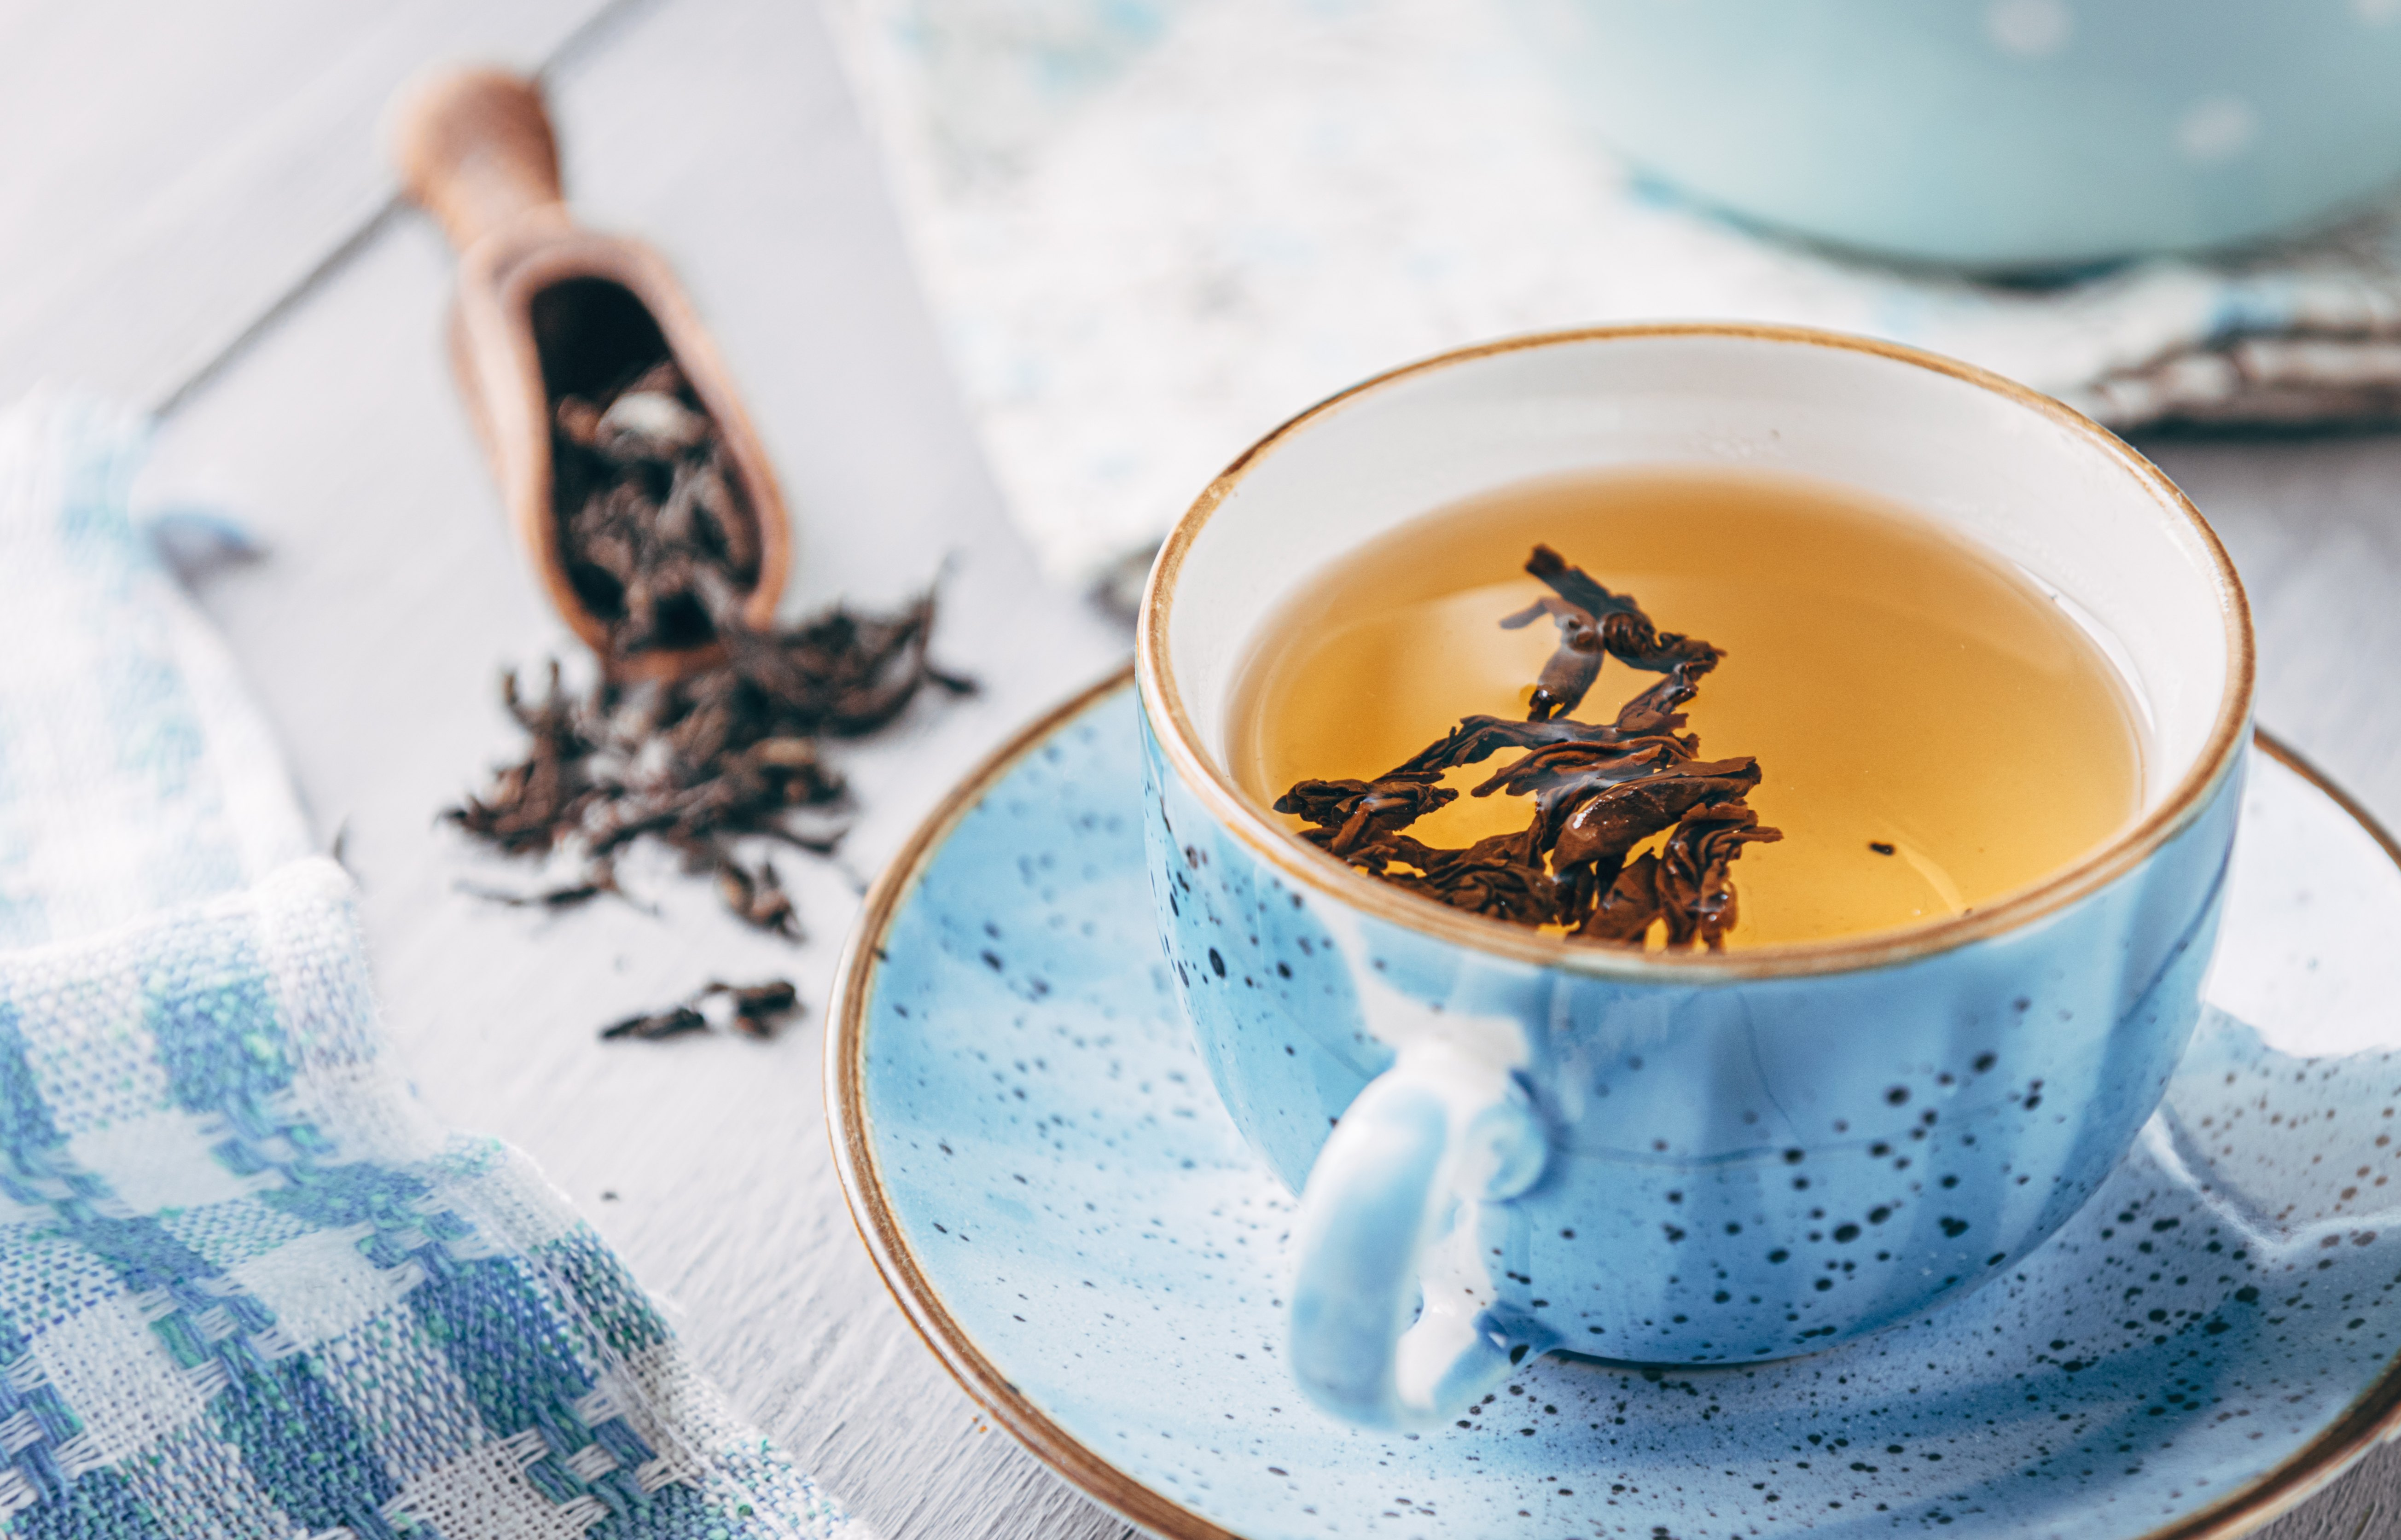 6 Teas to Stock Up On and Their Health Benefits